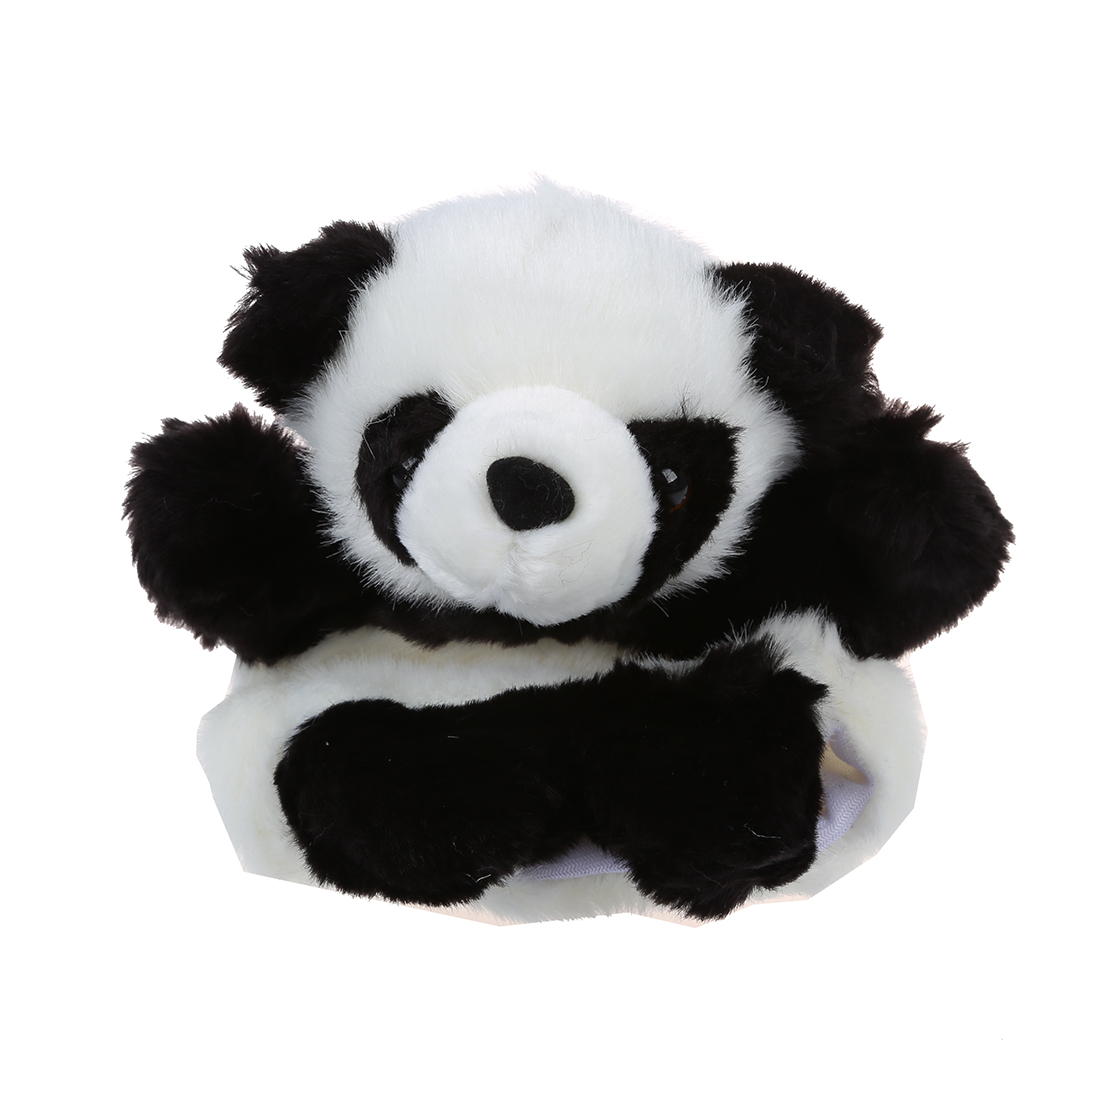 MYMF Cute Panda Wildlife Hand Glove Puppet Soft Plush Puppets Kid Childrens Toy Gift